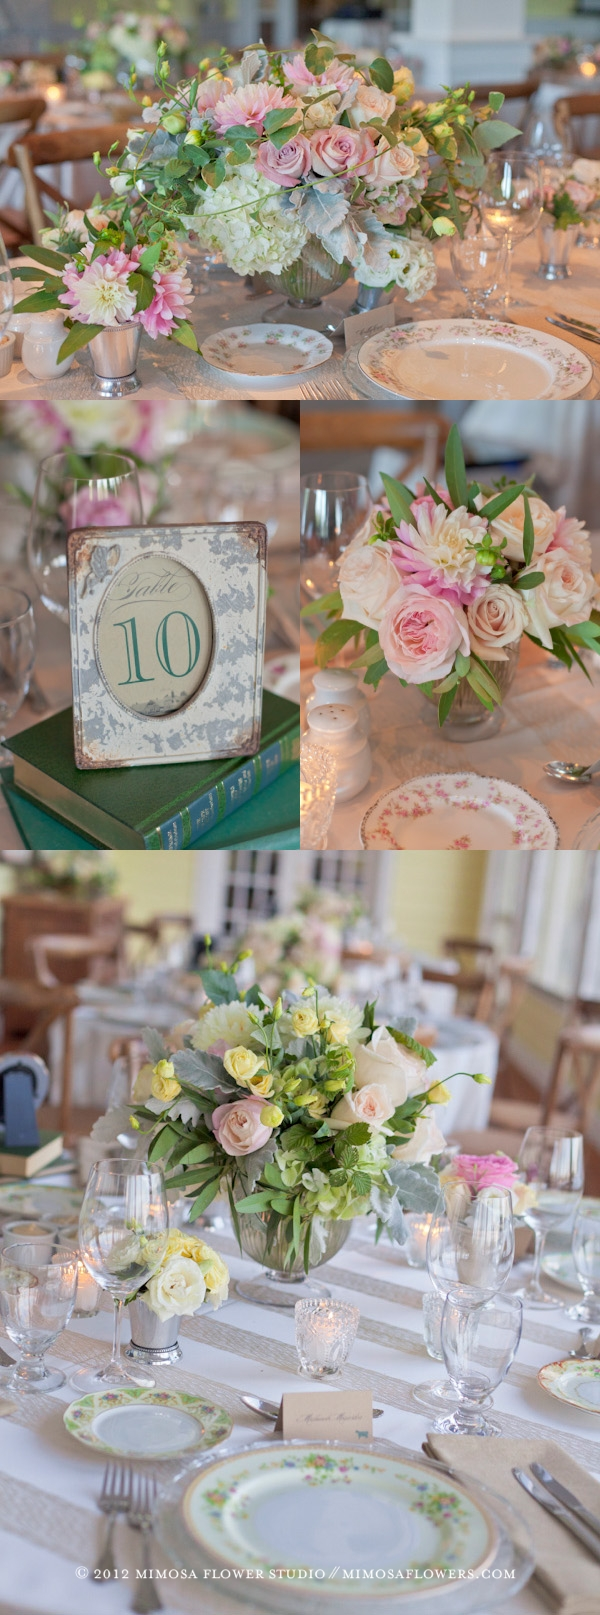 Muskoka Wedding Reception Flowers - Modern Vintage Theme